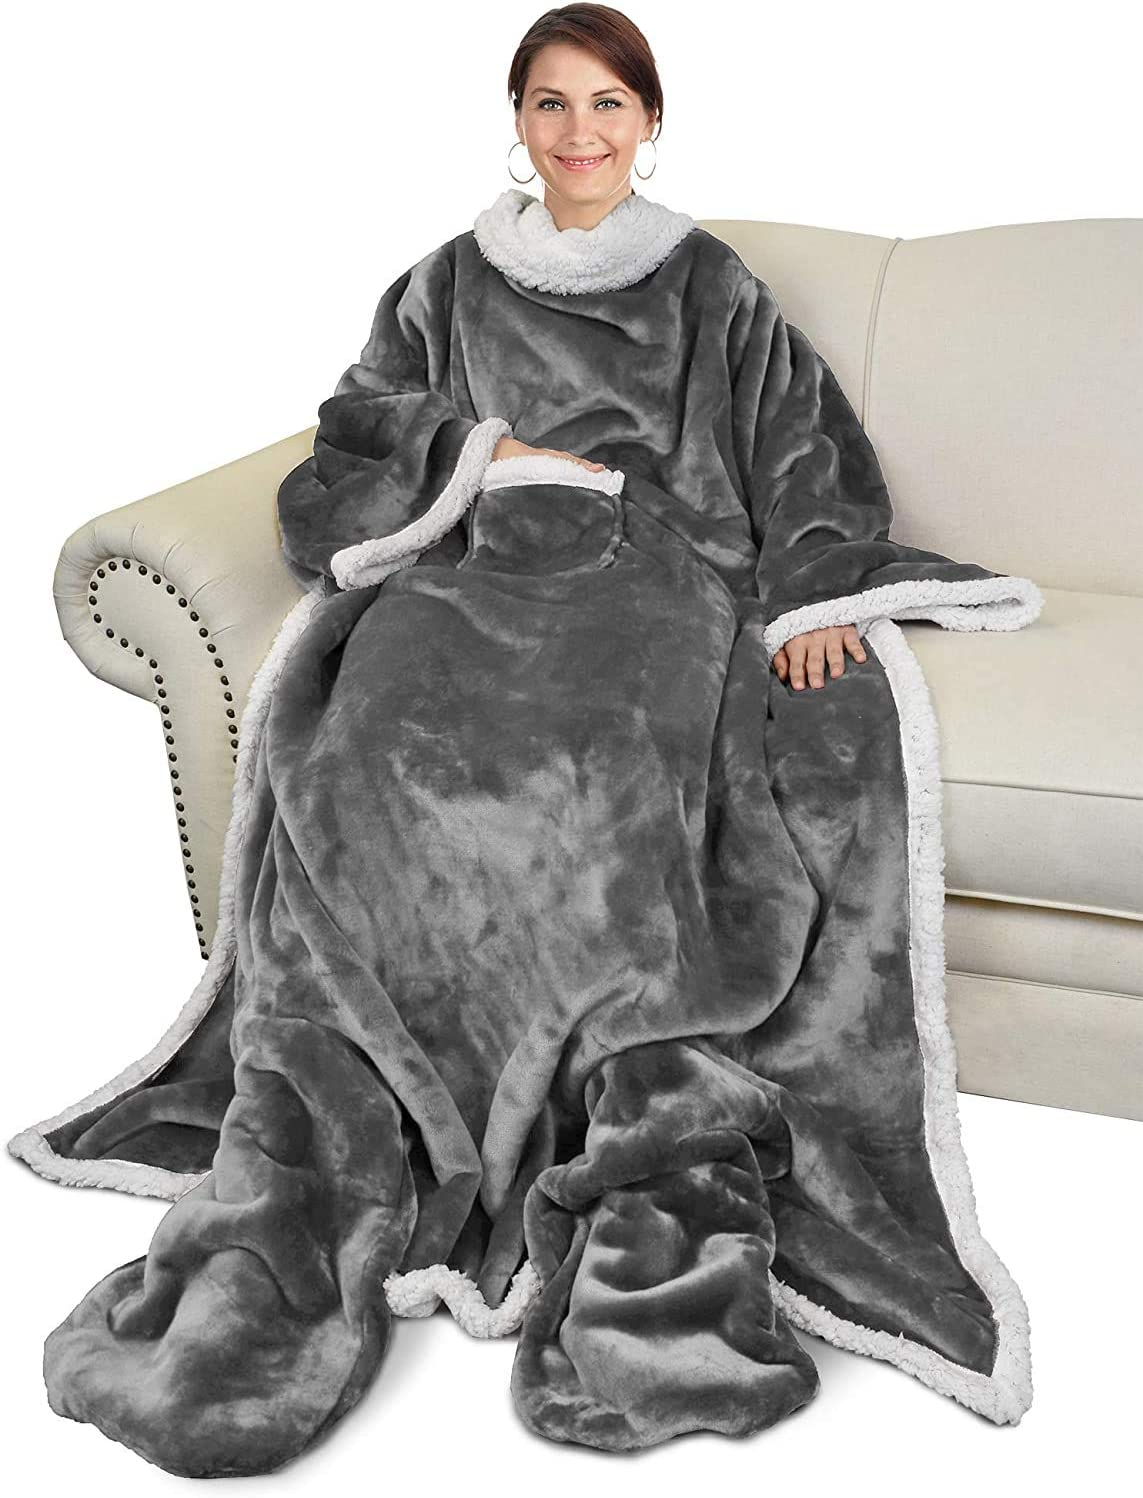 Catalonia Classy Wearable Sherpa Snuggle Blanket With Sleeves And Foot Pocket Soft Cosy Fleece Slankets For Women Warm Fluffy Plush Throws Winter Tv Blanket For Sofa Couch 190 X 135 Cm Amazon Co Uk Kitchen Home